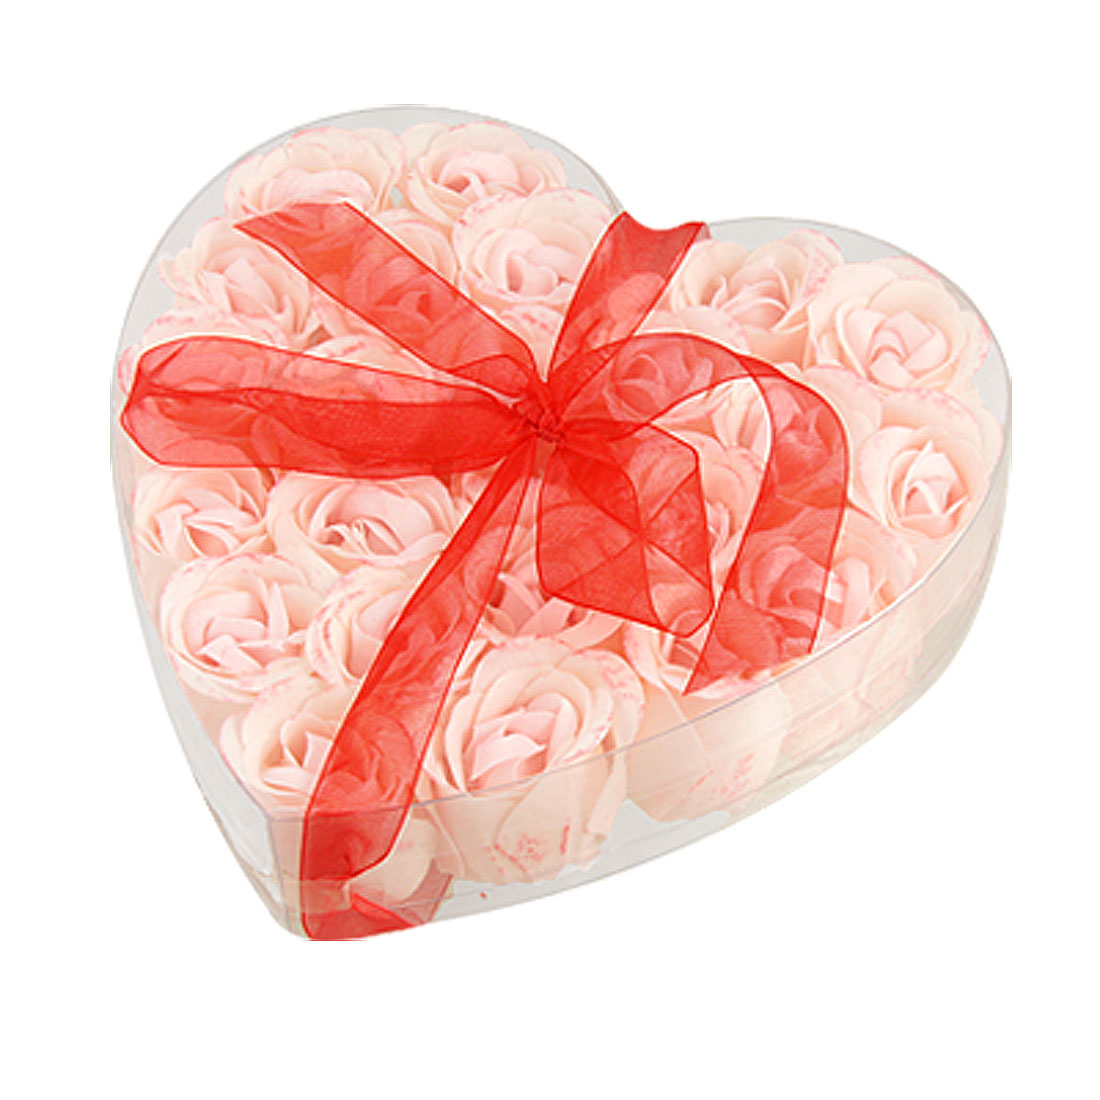 Pink Scented Bathing Soap Rose Petal 24 Pcs in Heart Box